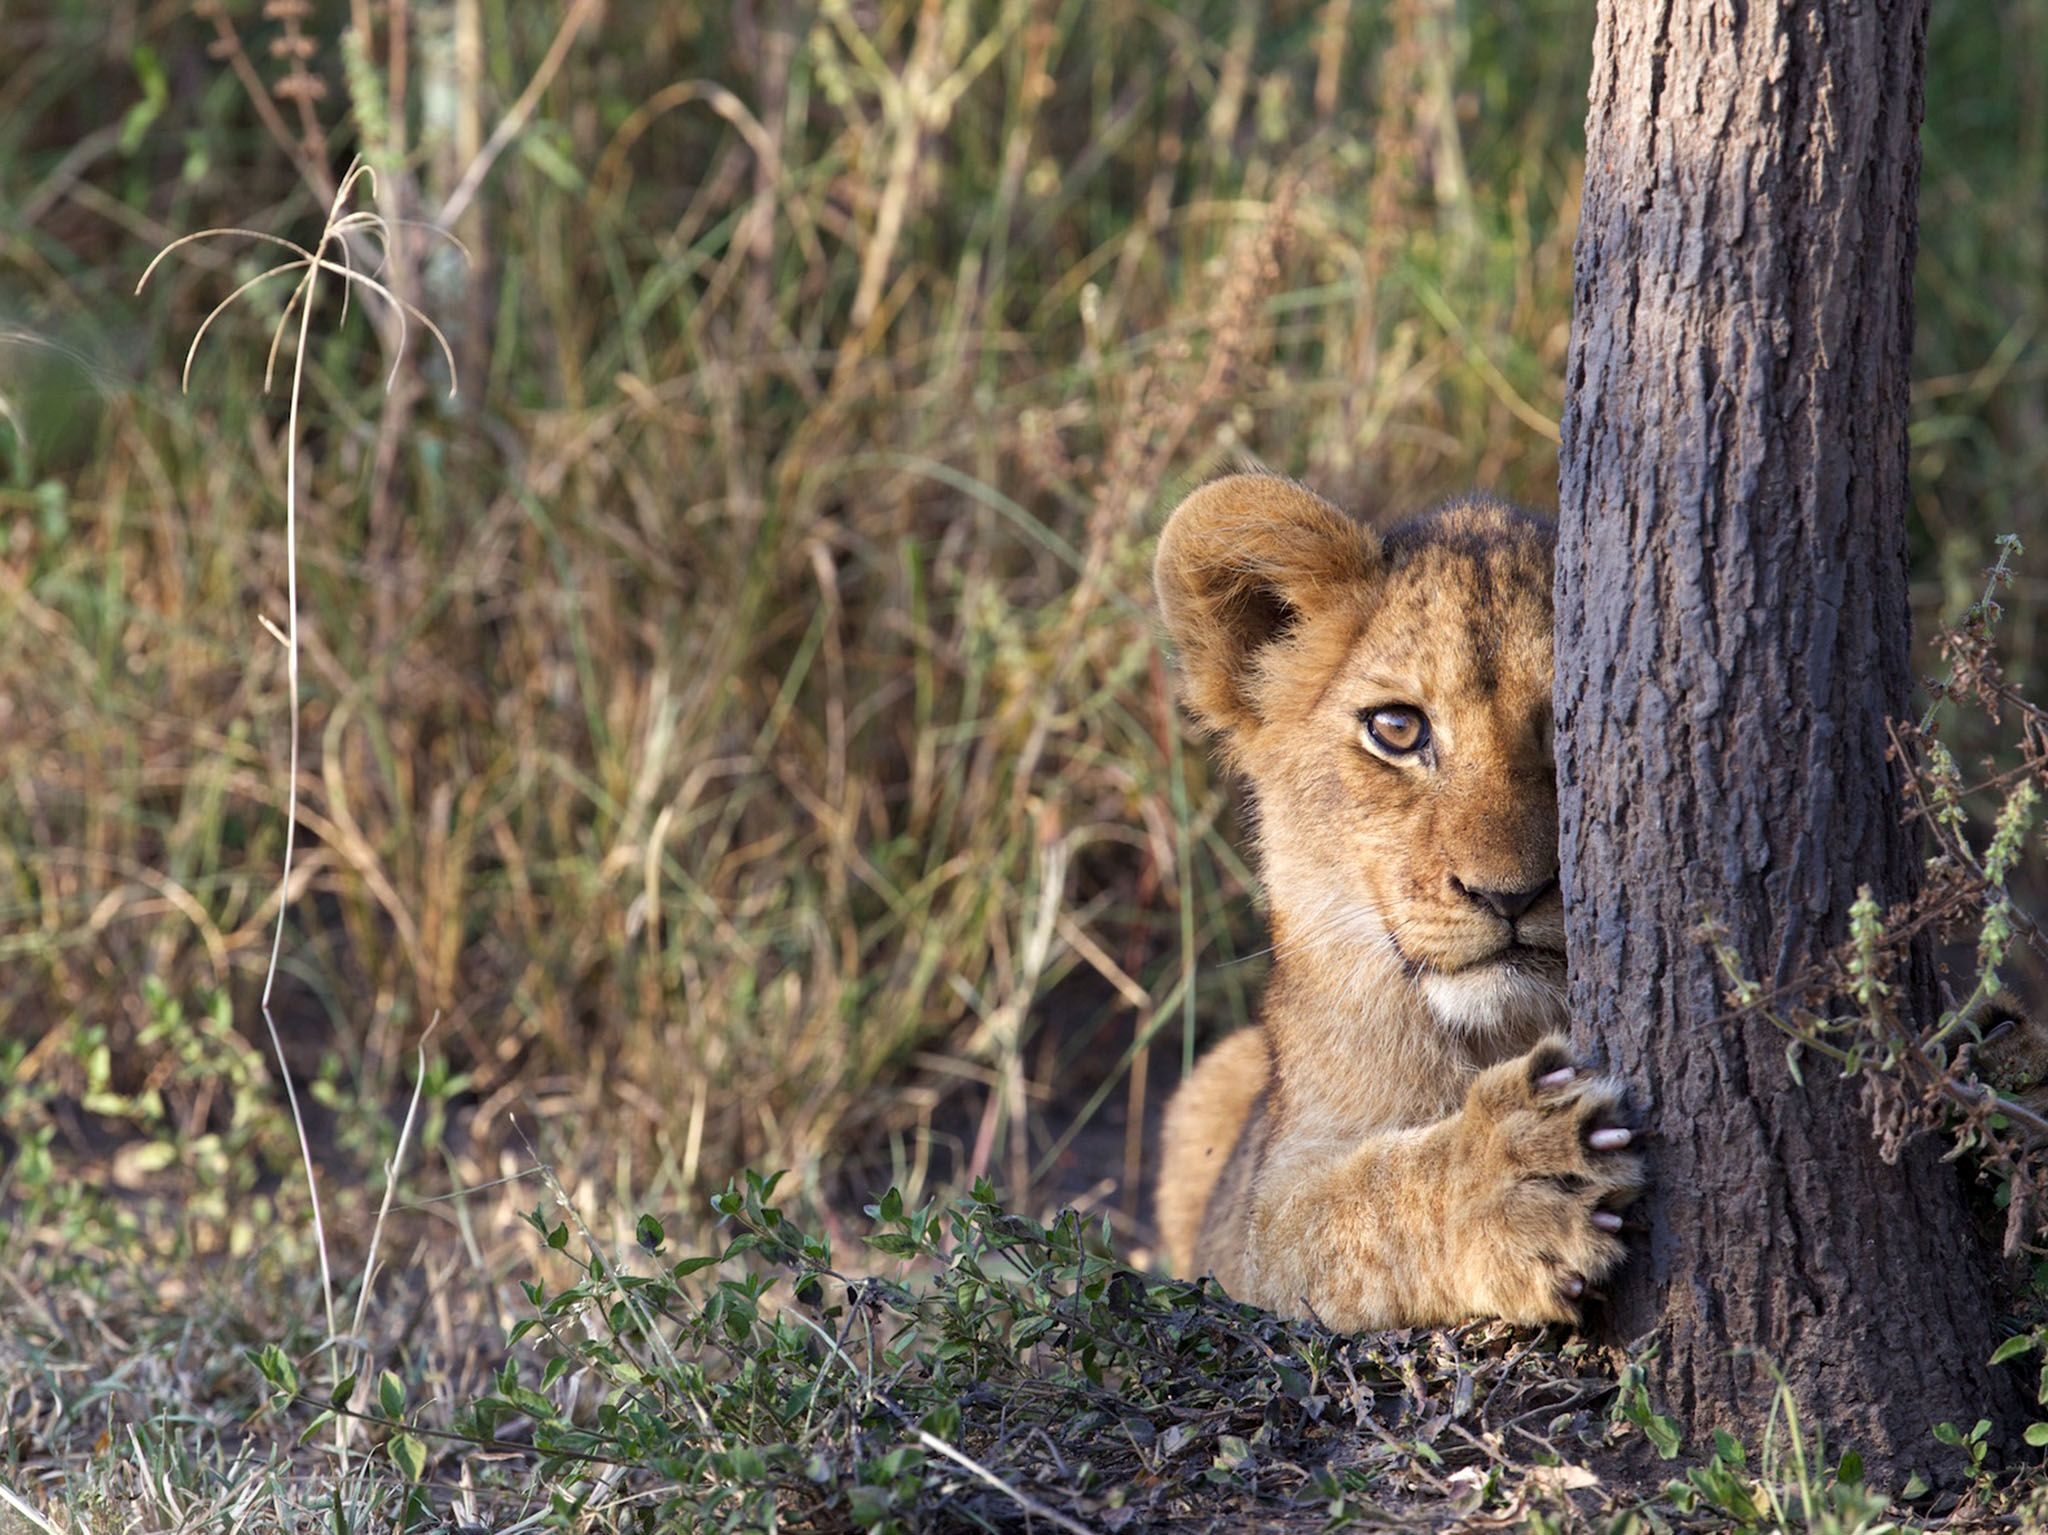 Rwanda: Lion cub peeking out from behind tree trunk in Akagera National Park, Rwanda. This image... [Photo of the day - March 2017]